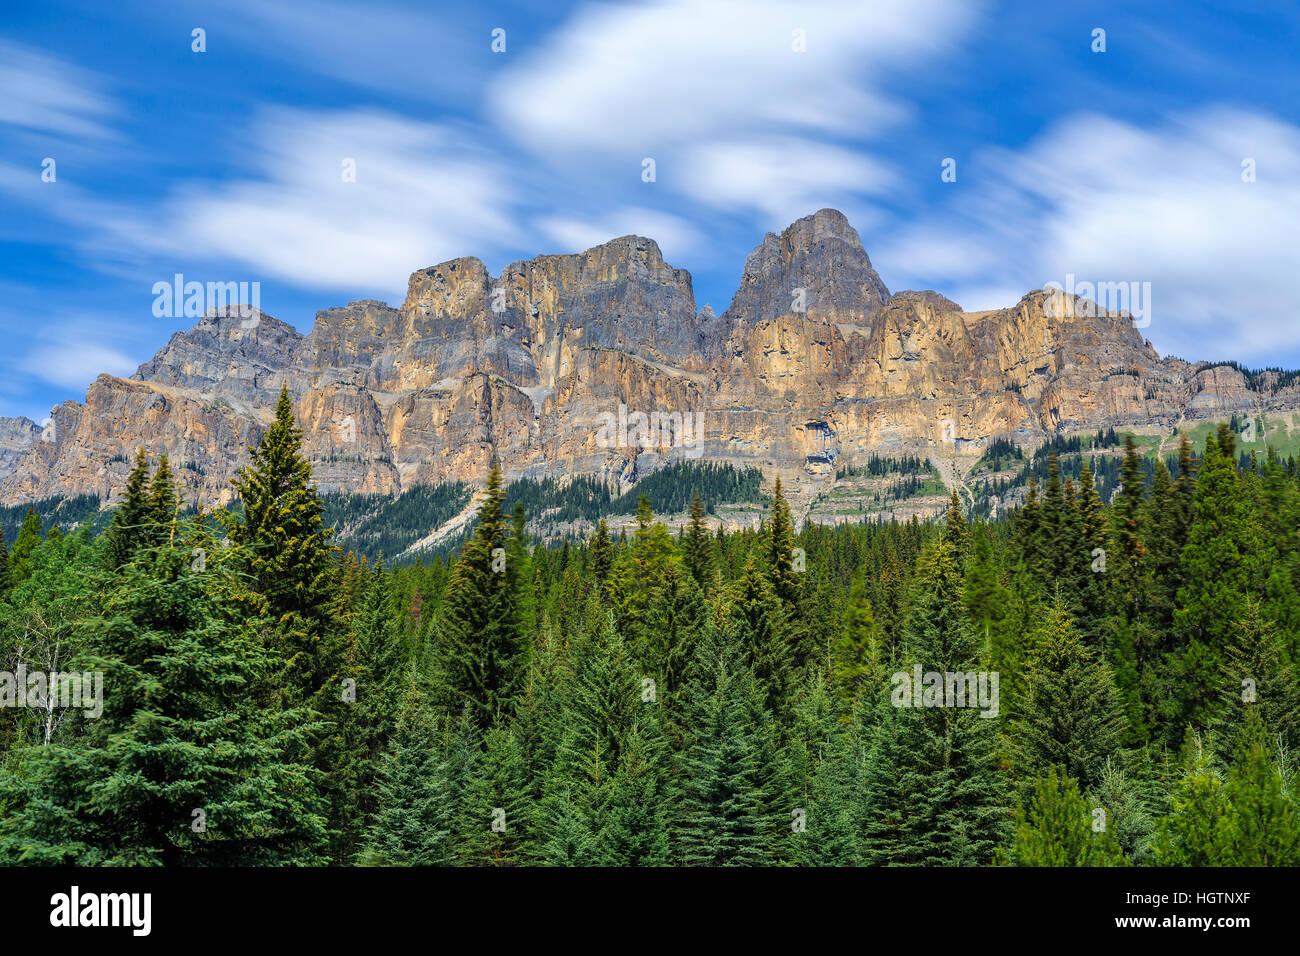 Castle Mountain, Banff National Park, Alberta, Canada. - Stock Image